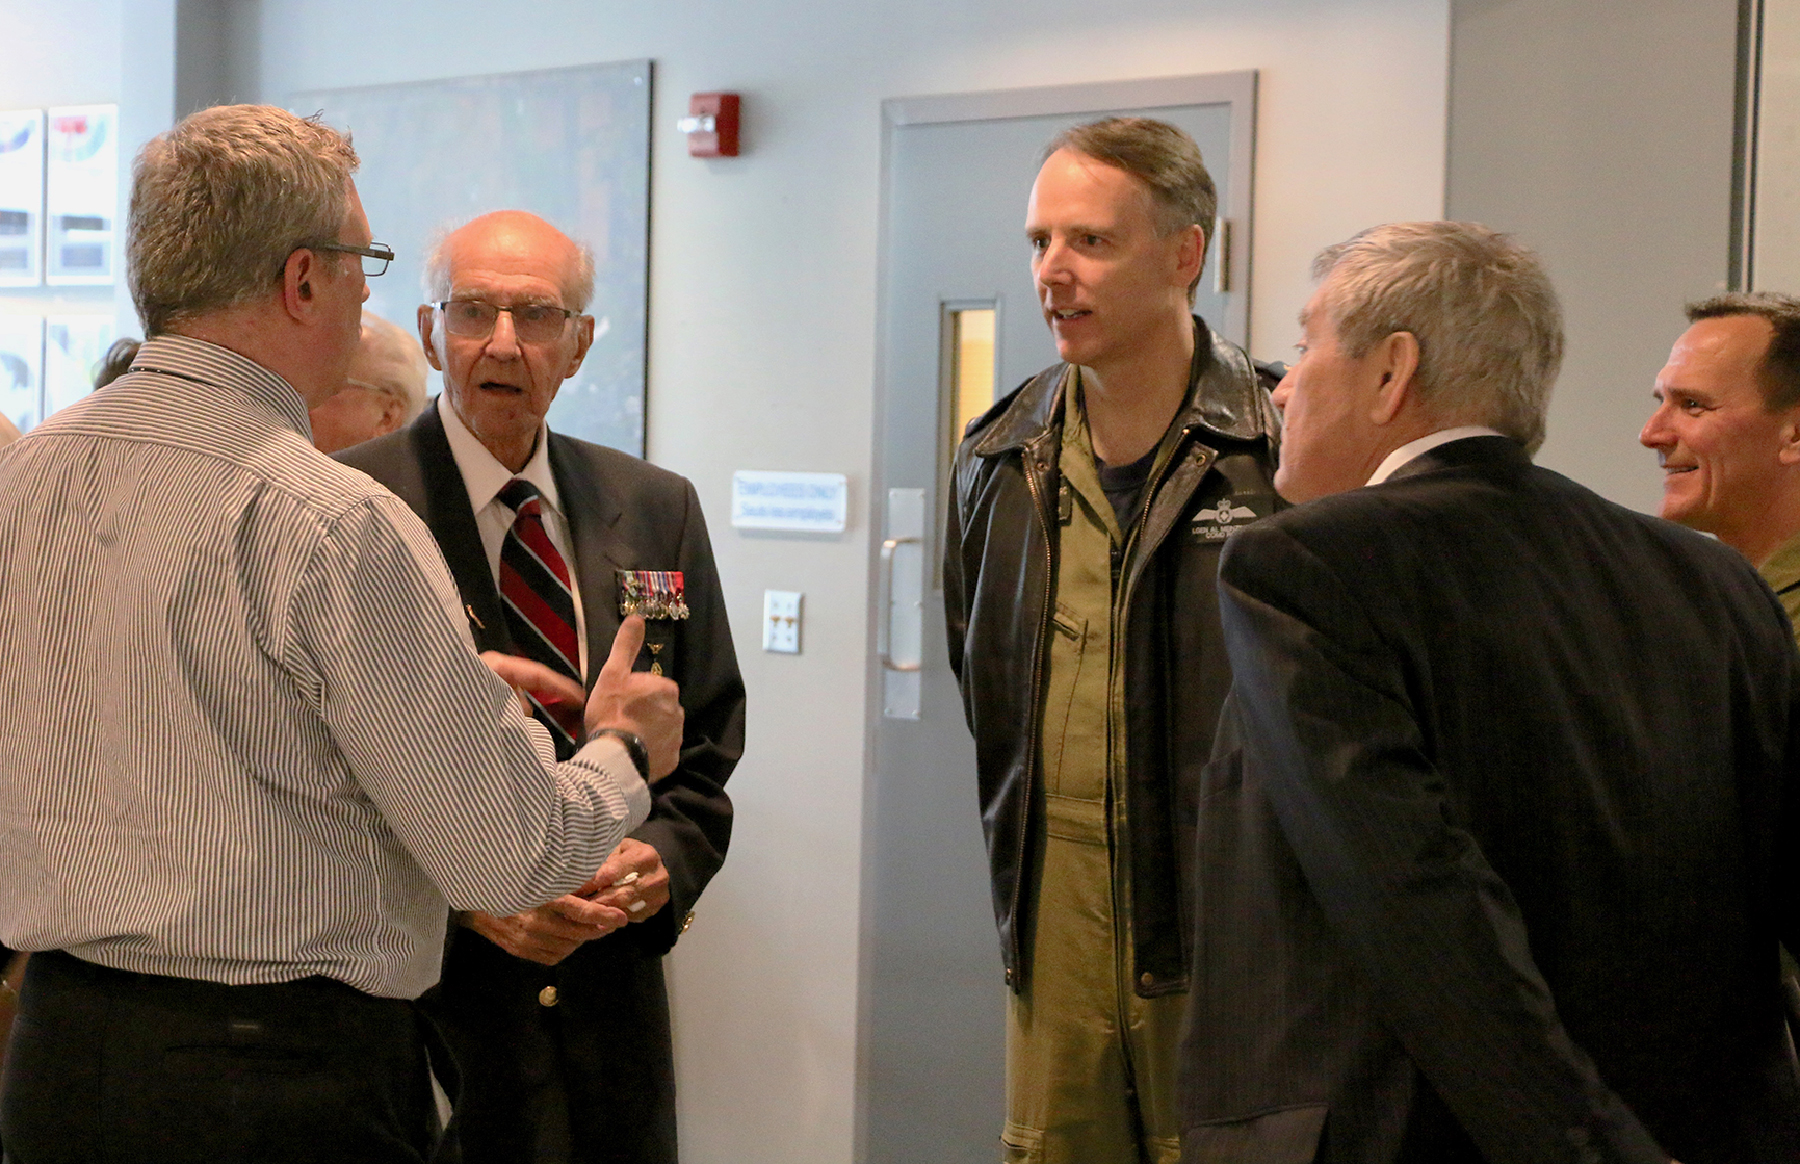 National Air Force Museum of Canada's executive director Kevin Windsor greets Flight Lieutenant (retired) Stuart Vallières and RCAF commander Lieutenant-General Al Meinzinger on May 15, 2019. PHOTO: Makala Chapman